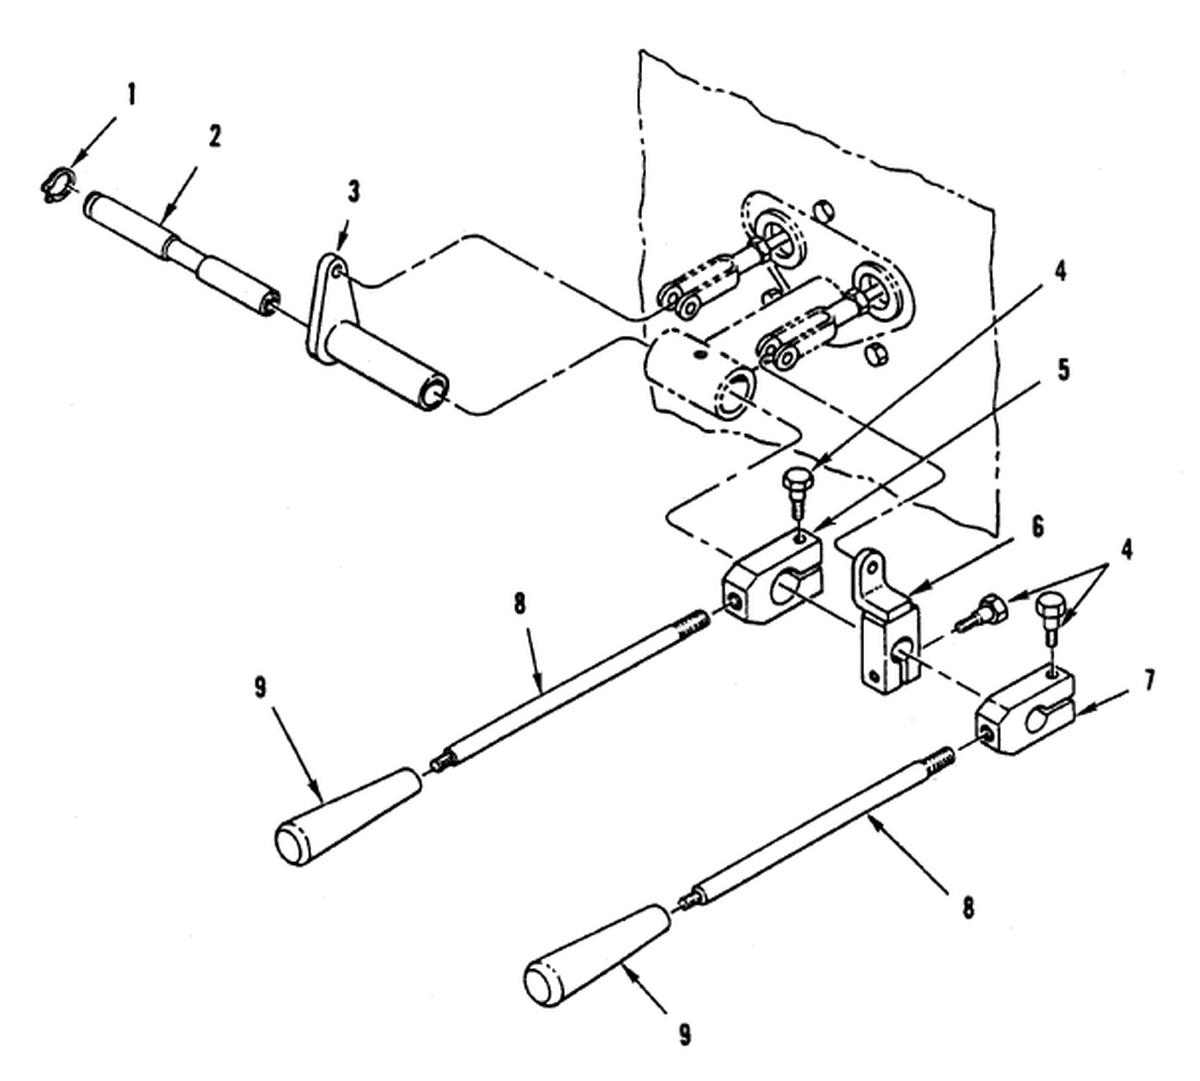 hight resolution of hydraulic control levers and linkage front loader forklift control valve lever controls see